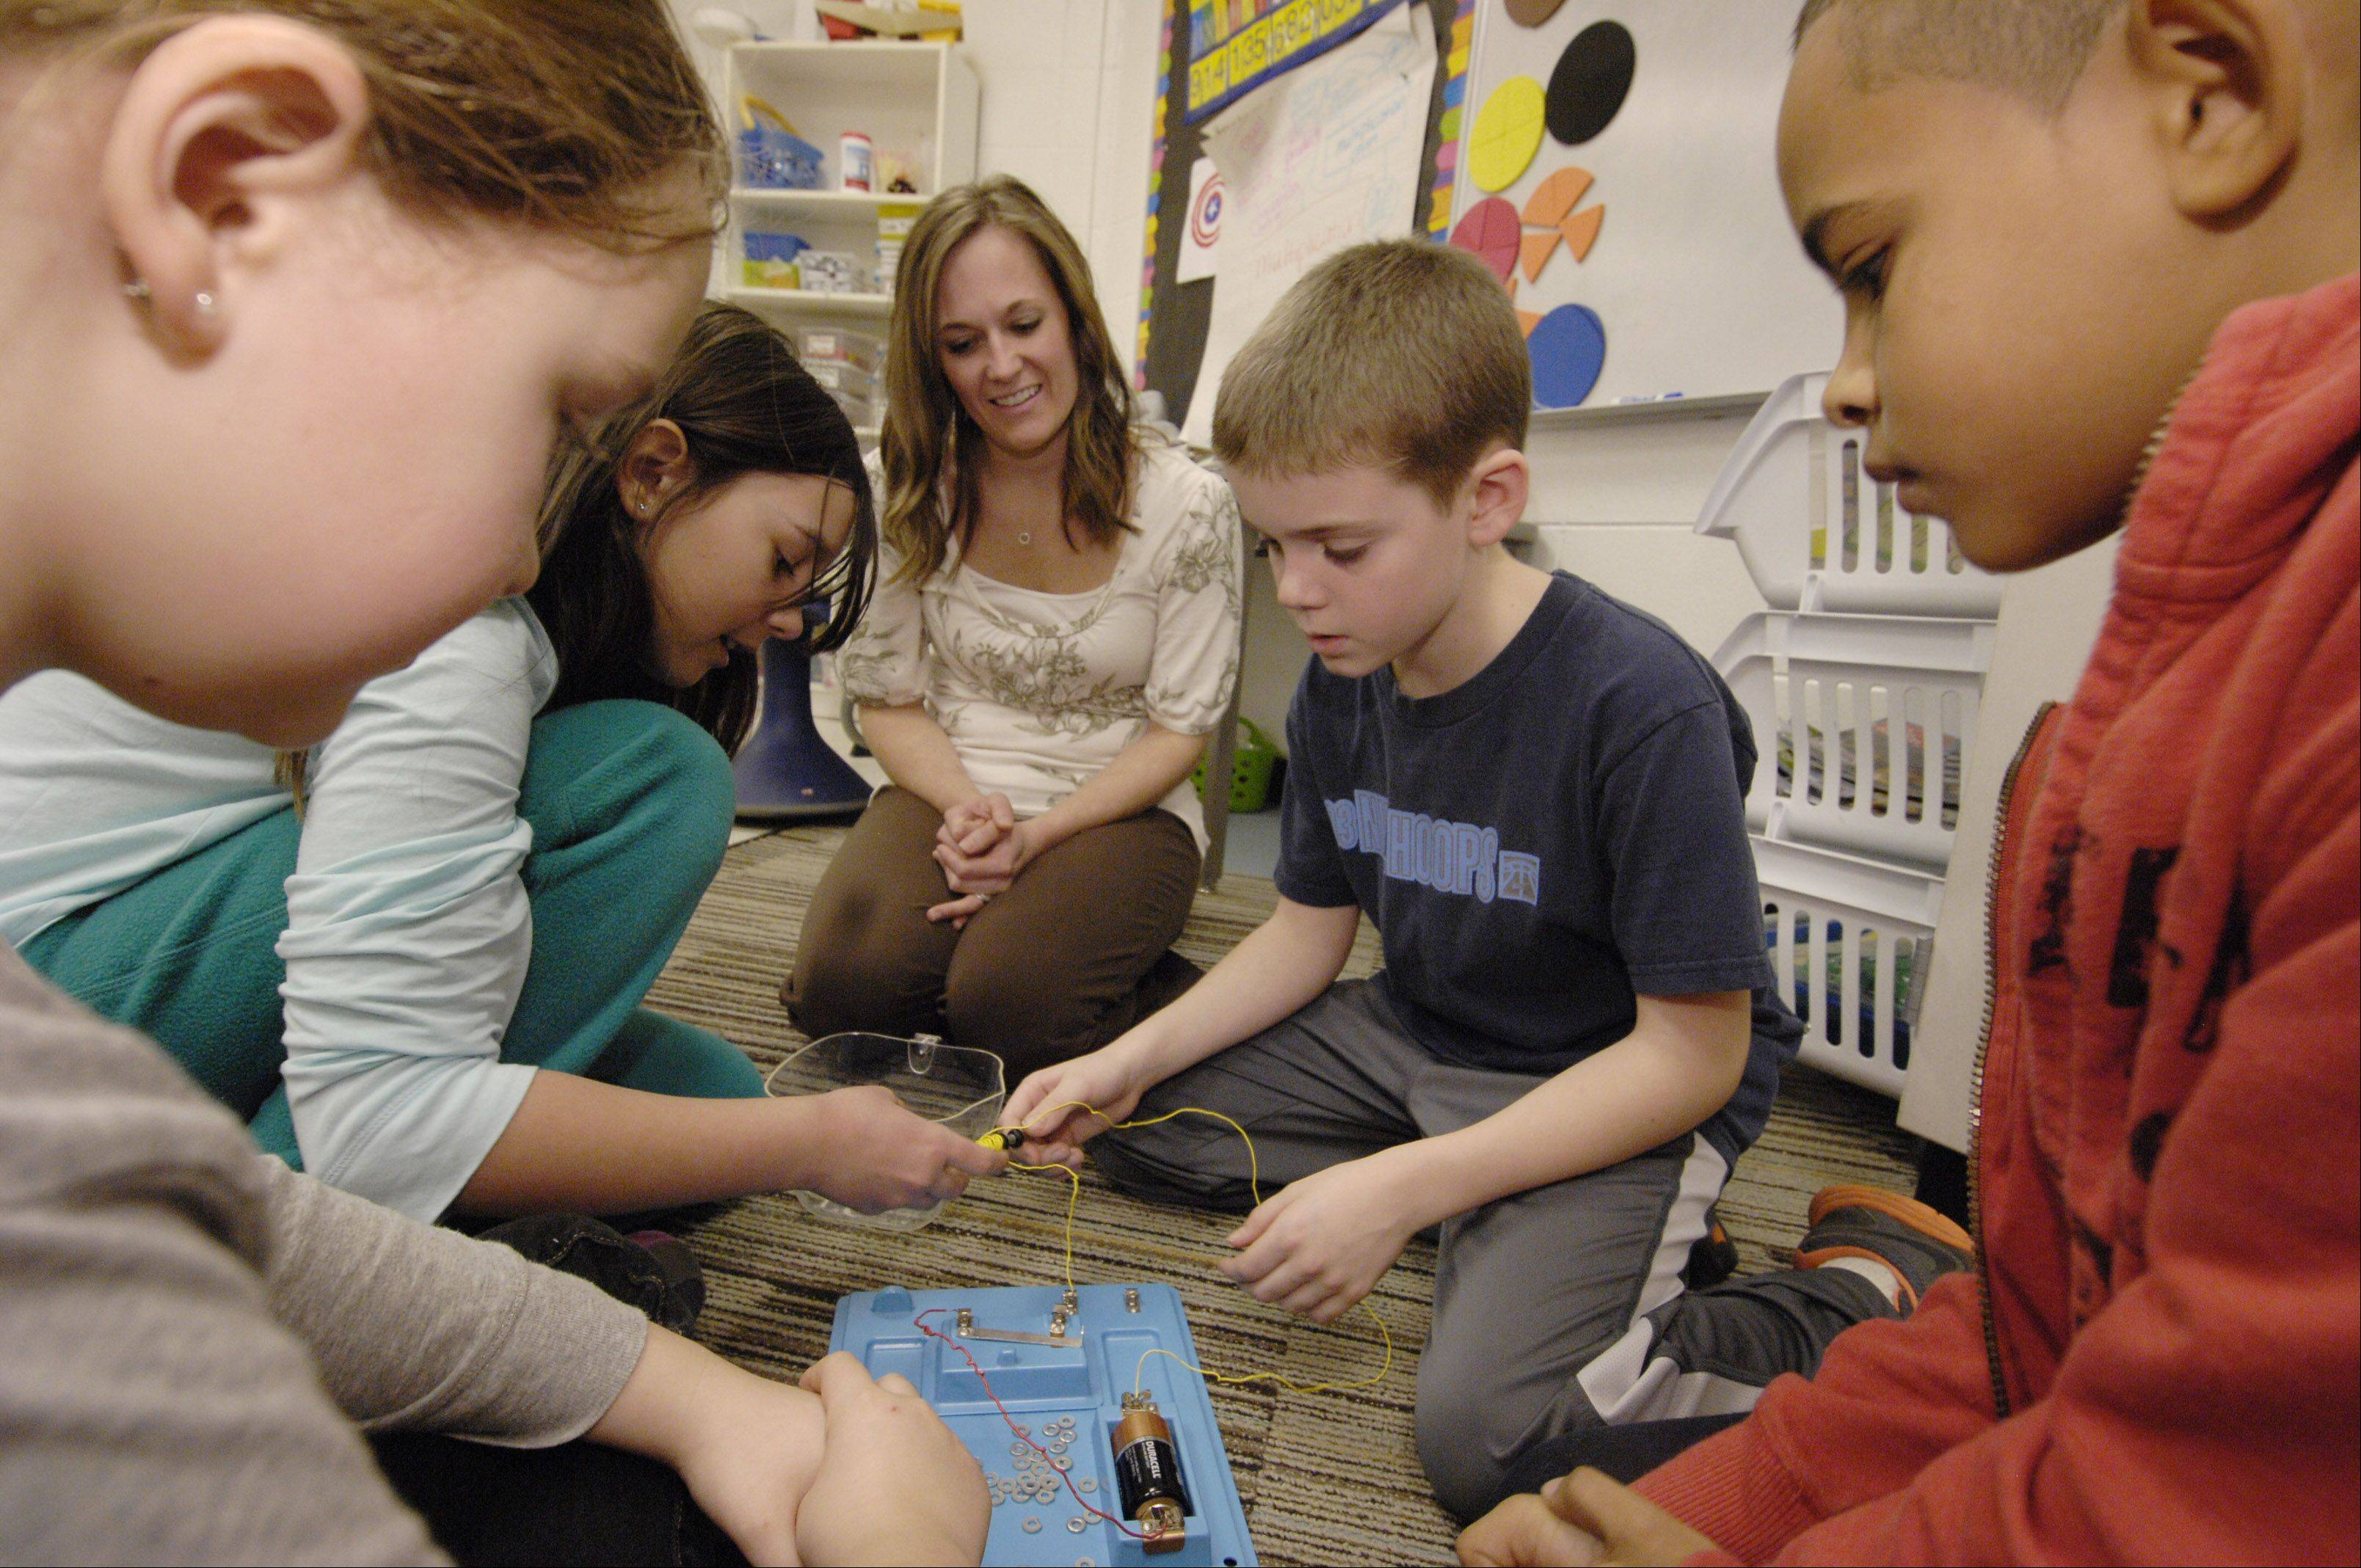 Fourth grade students, Alice Gramlich, Lilia Carman, Zach Bertrand, and Ajani Rowland work on their electro magnet project as teacher Dee Dee Aldrich looks on at Churchill School. Glen Ellyn School District 41 is proposing to combine classes as part of the Think Tank initiative, in an effort to better focus on science, math, and literacy instruction.